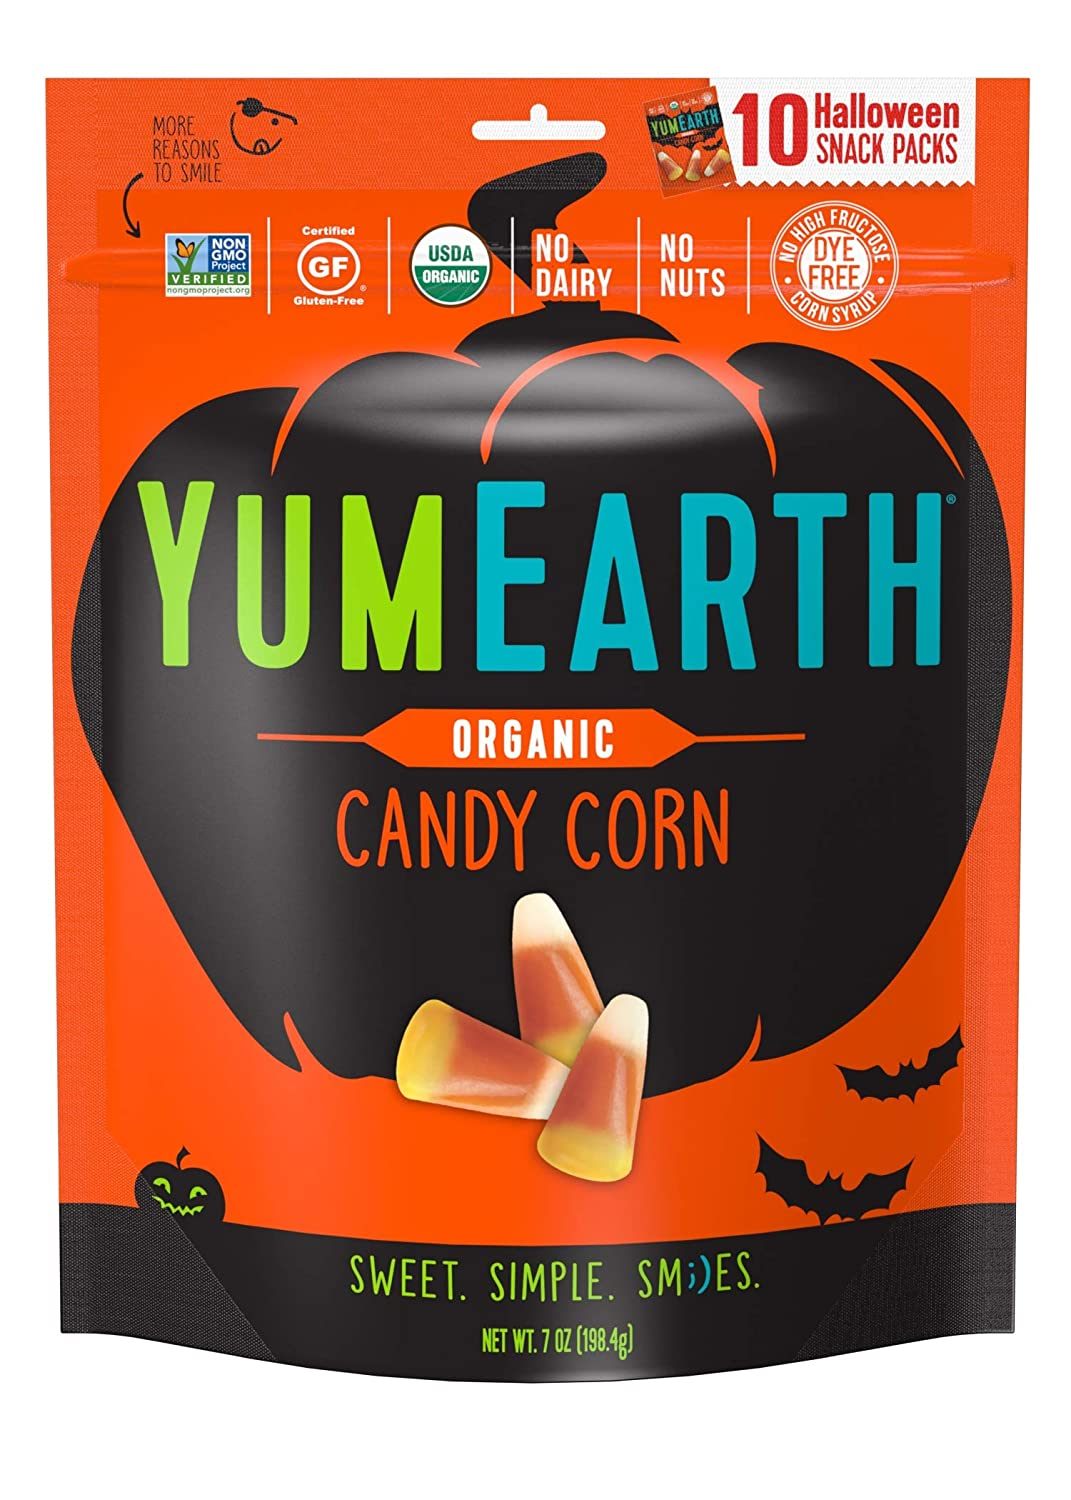 pack of Yum Earth Organic Candy Corn with Halloween pumpkin illustration